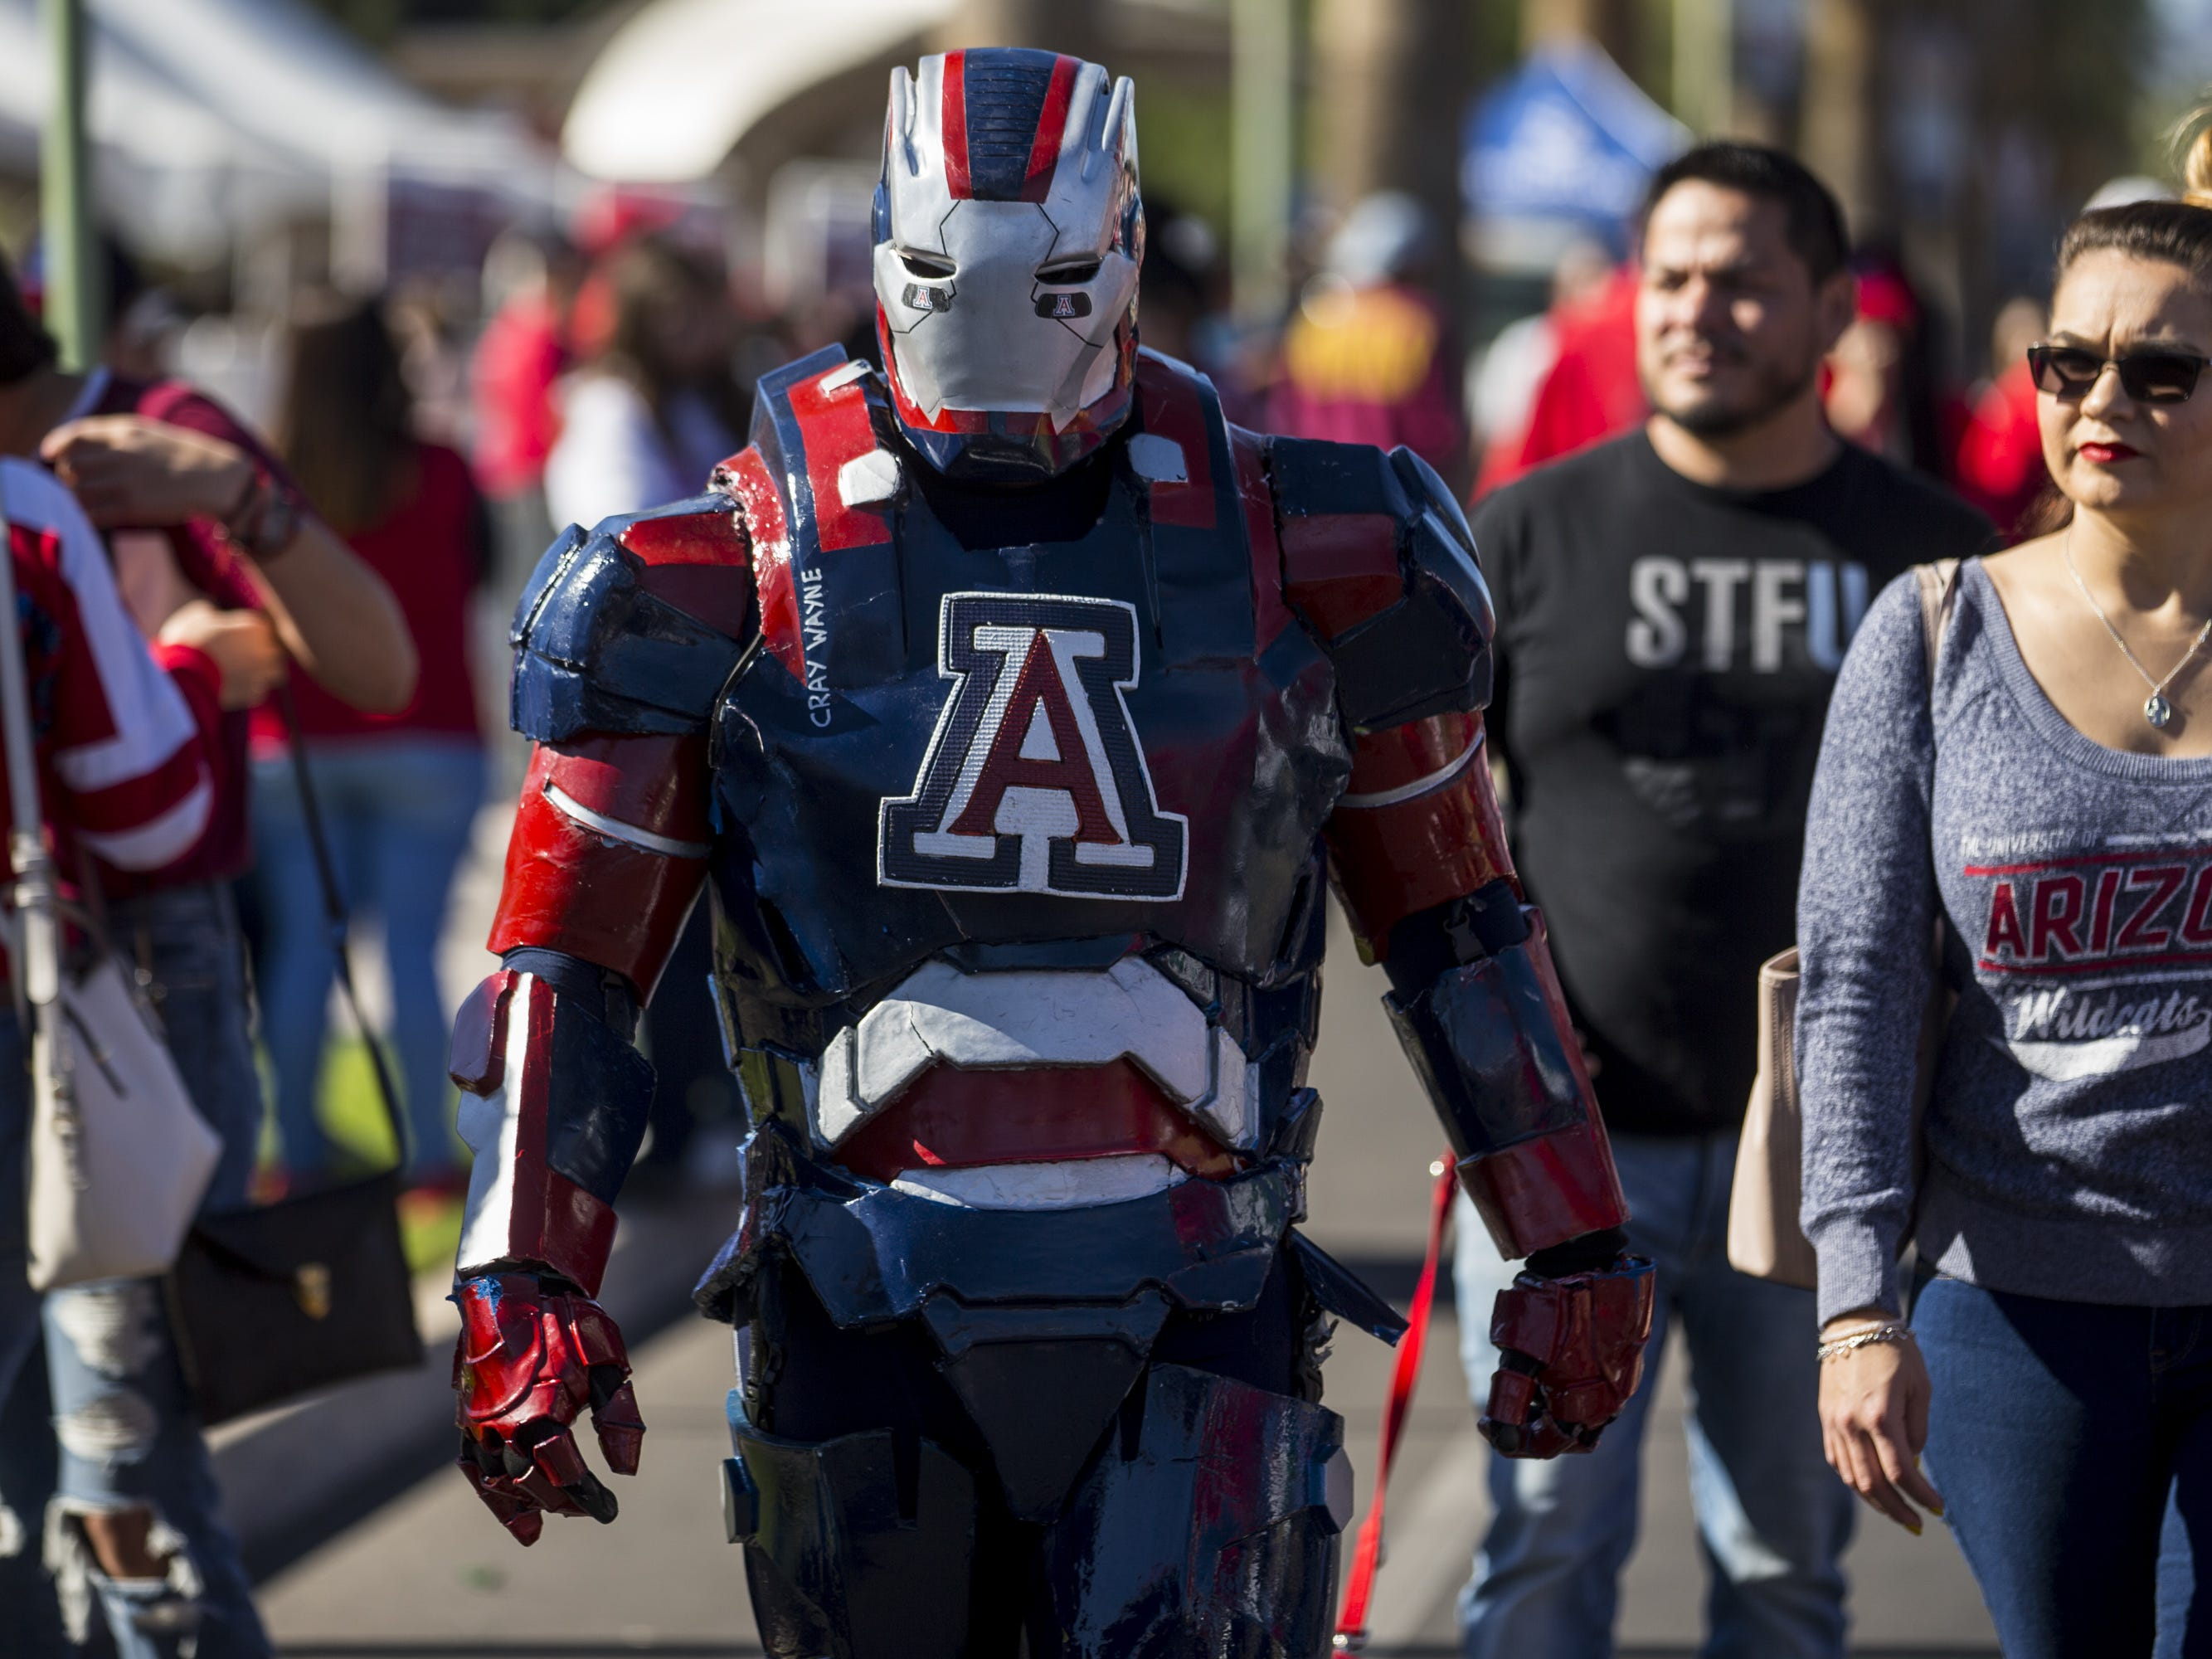 Jaime Reyes walks around the tailgating area before the Territorial Cup football game on Saturday, Nov. 24, 2018, at Arizona Stadium in Tucson, Ariz.